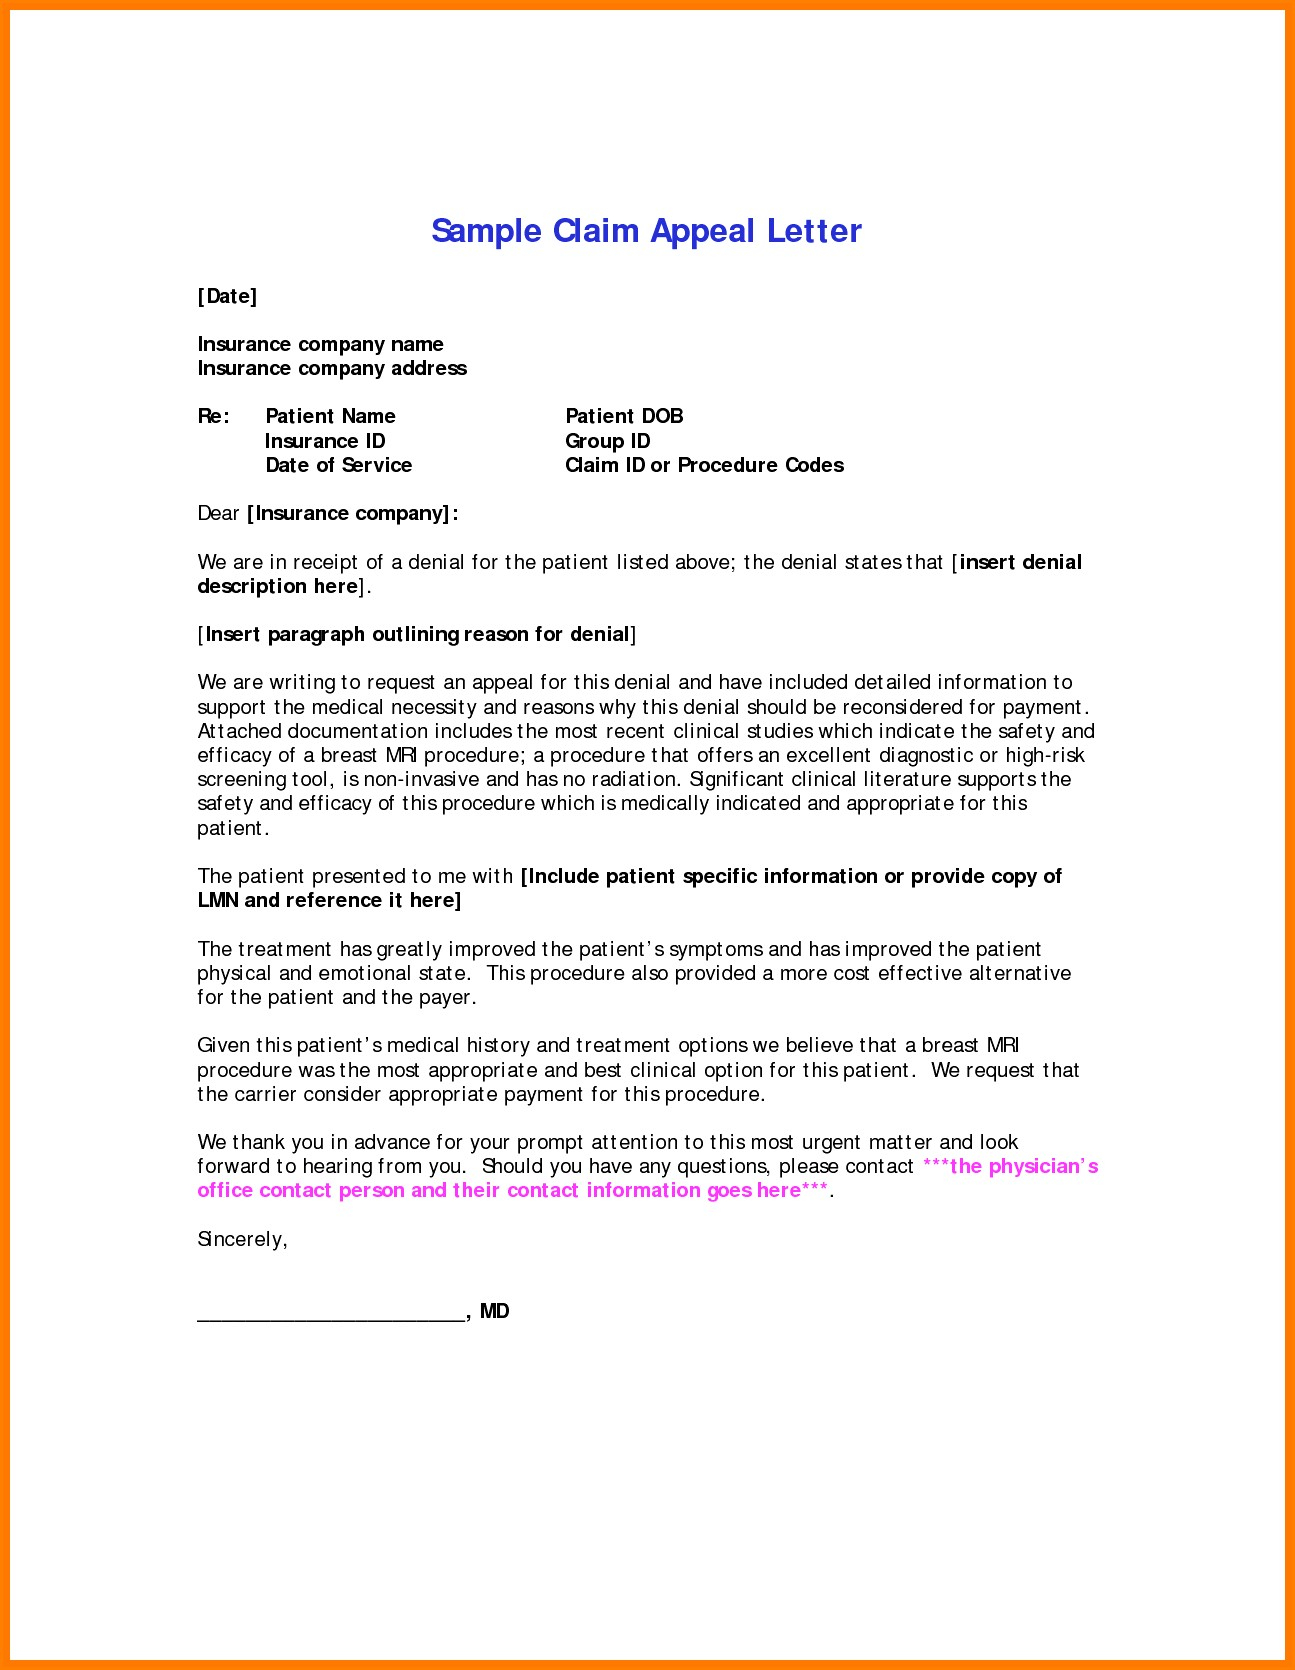 medical claim appeal letter template example-Request Letter format for Medical Reimbursement New Appeal Letter Template Medical Vgmb 20-c